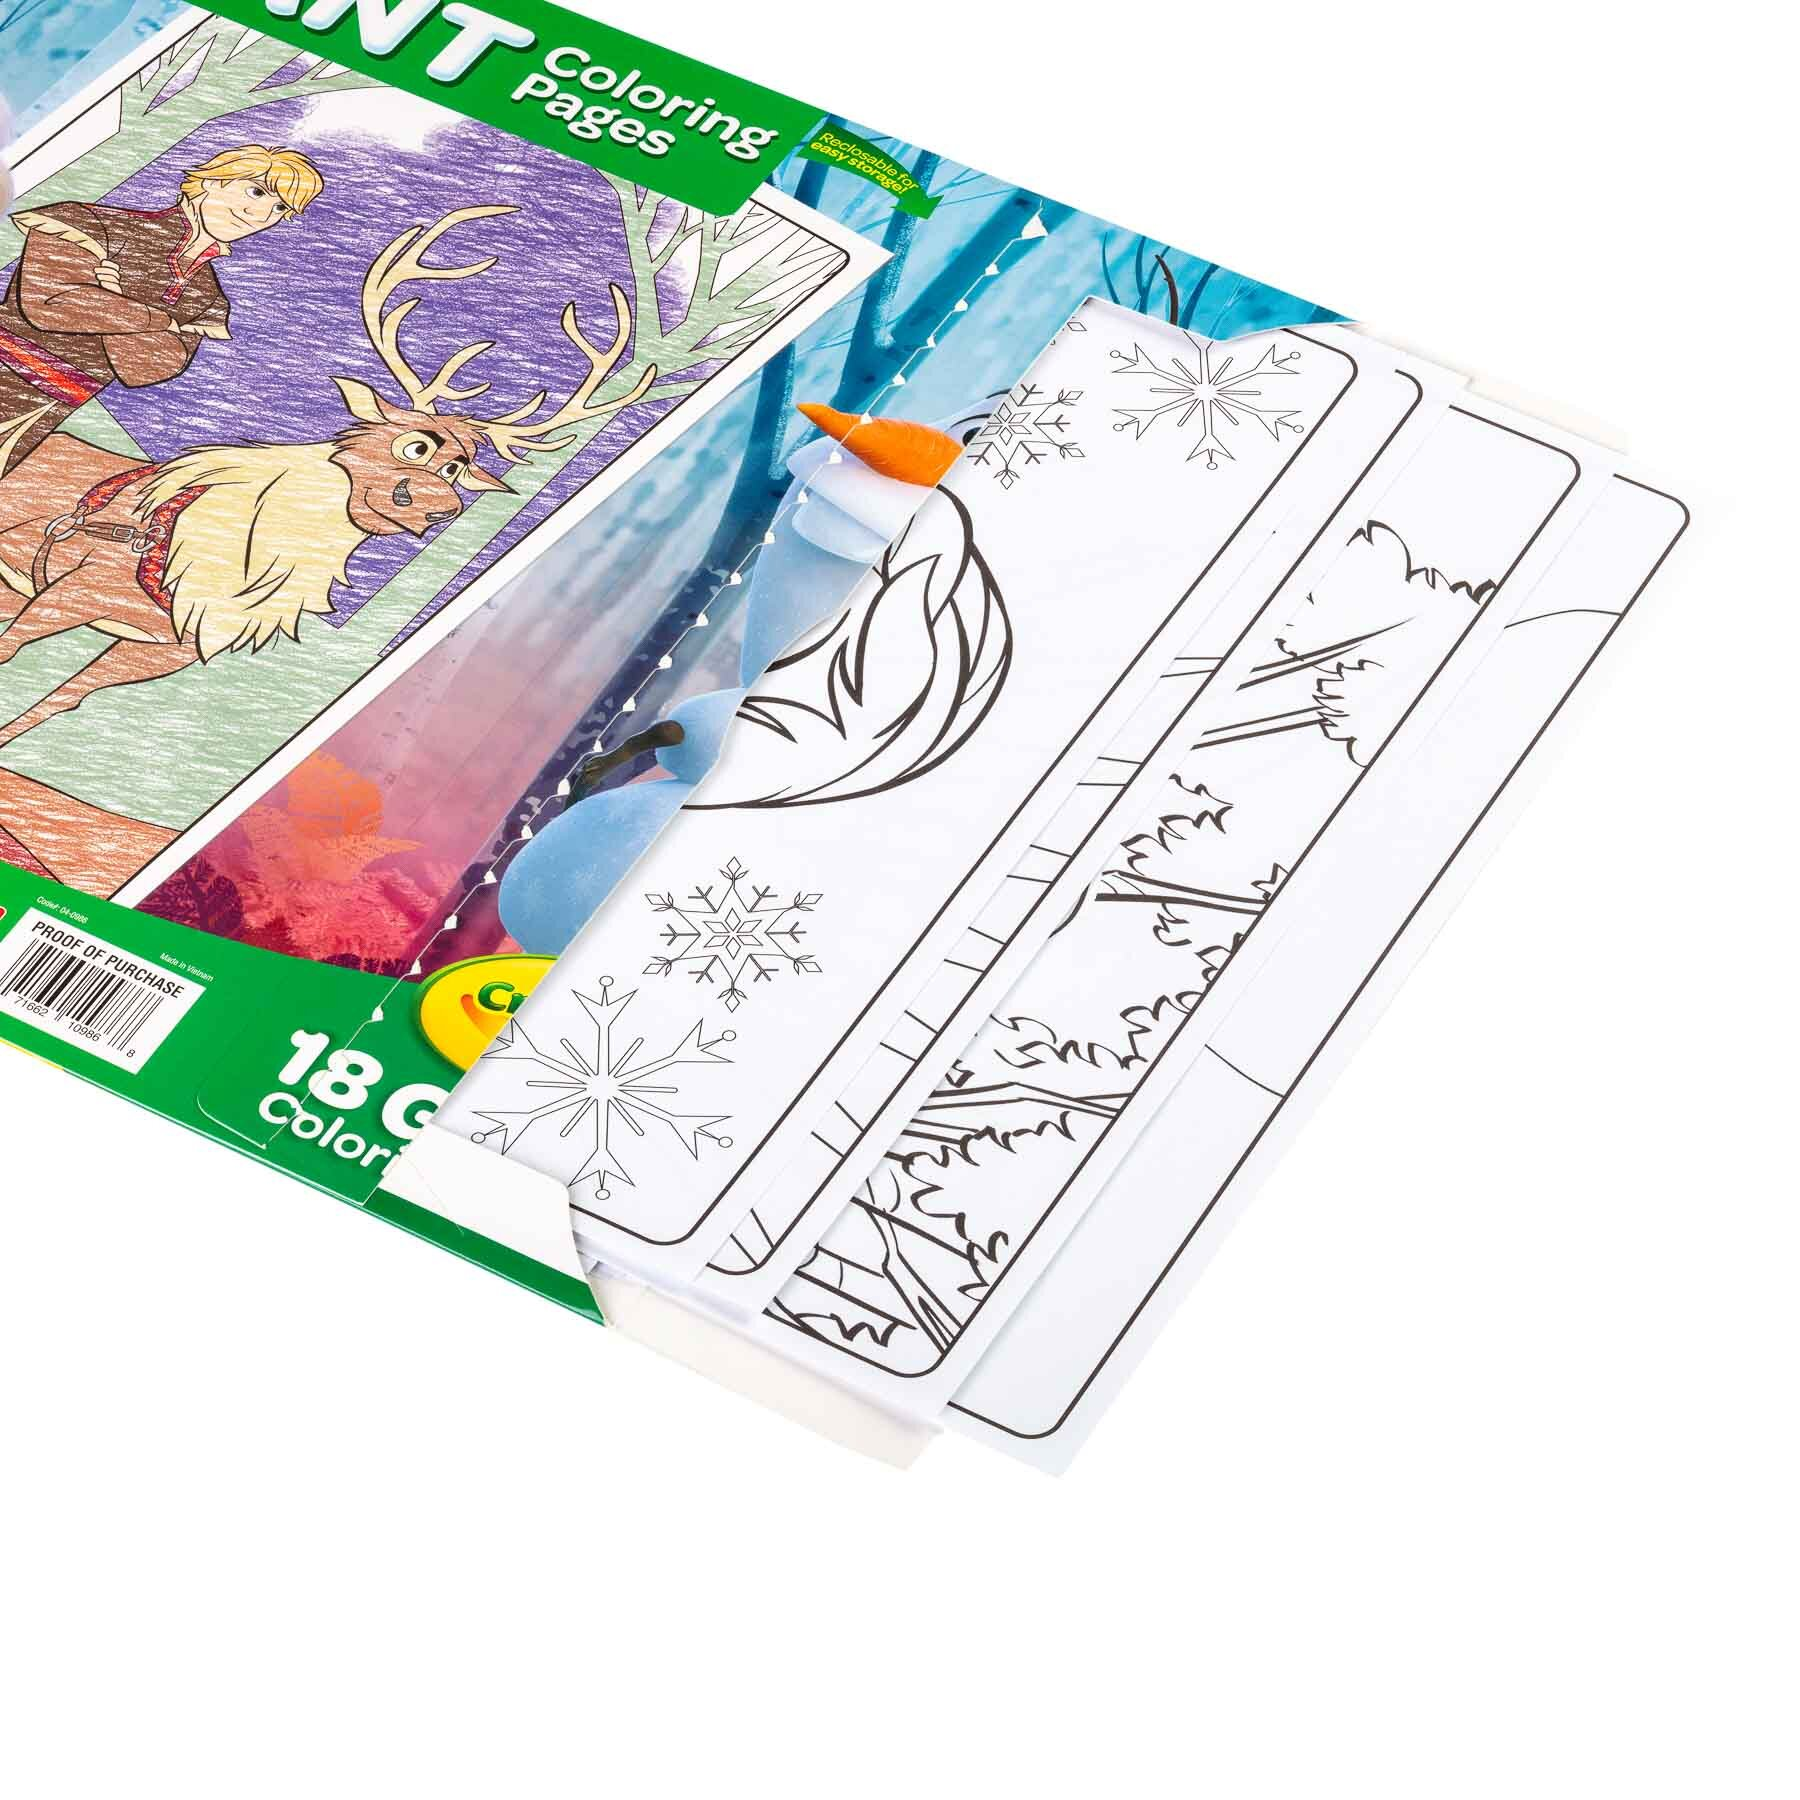 Giant Coloring Pages Frozen II Open Pack Books and publication product photography sample